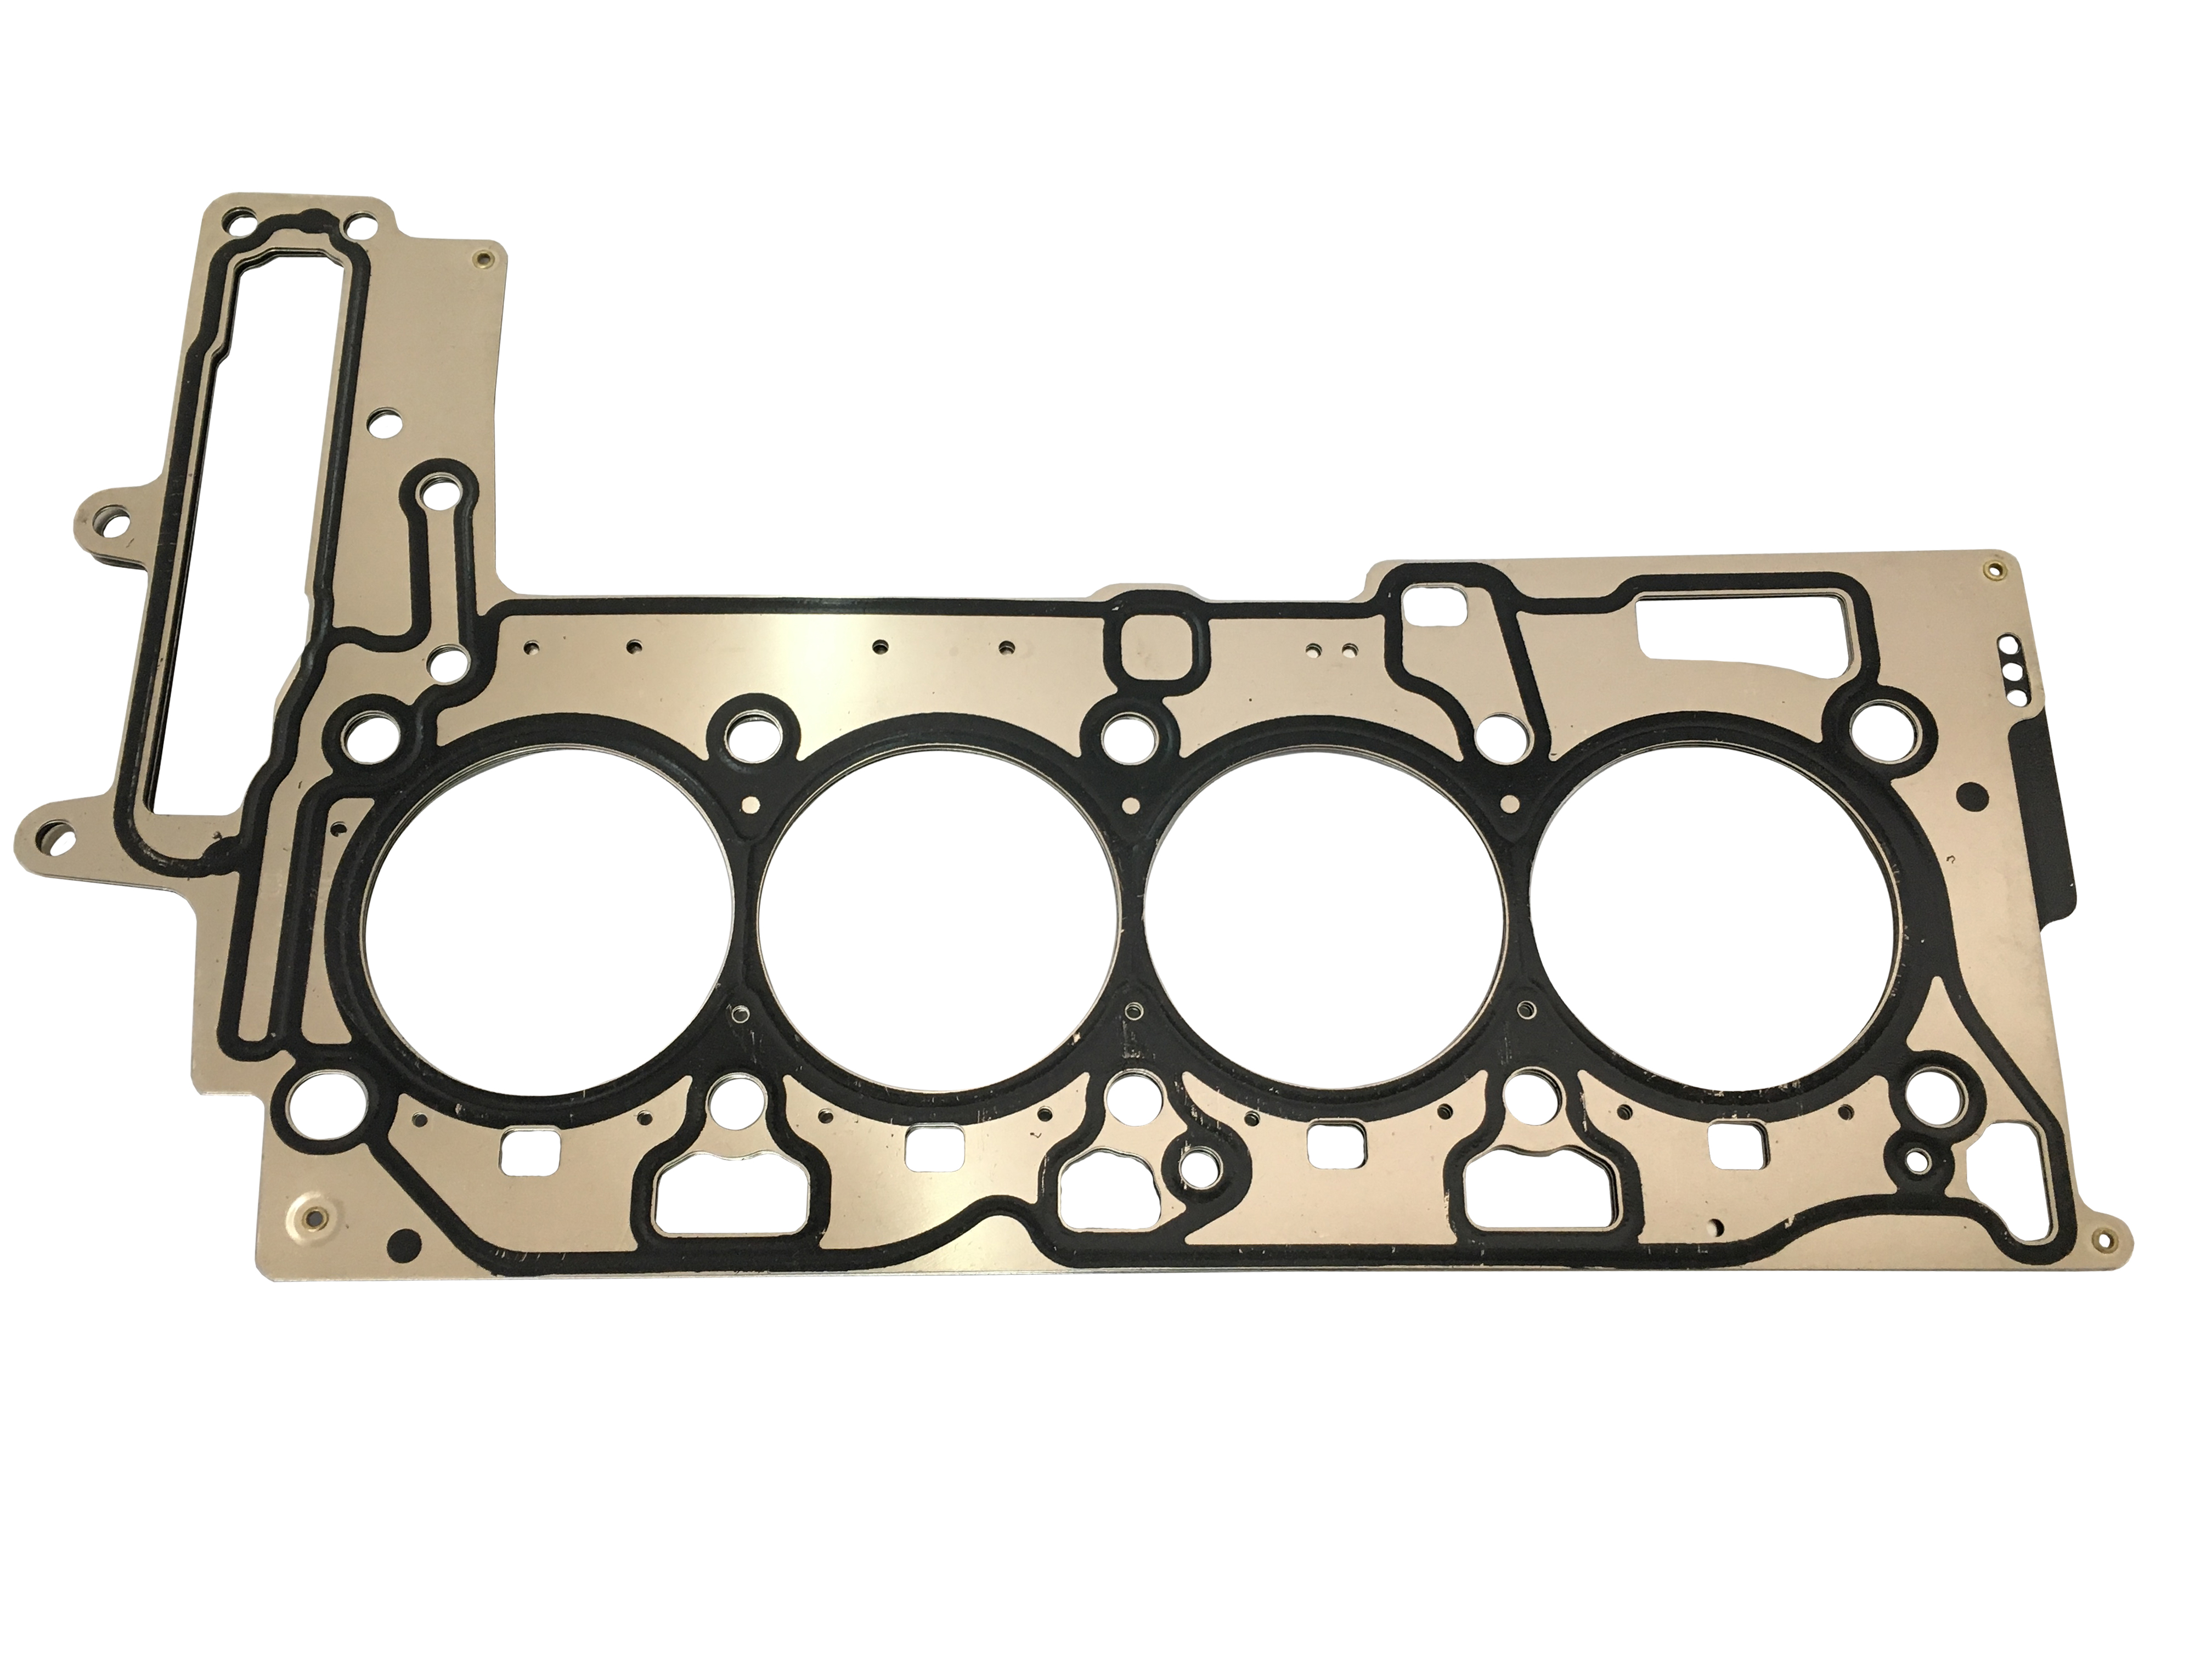 Cylinder head gasket for BMW 1 series E81 E87 E88 E82 120 123 d 2.0 N47D20A NEW